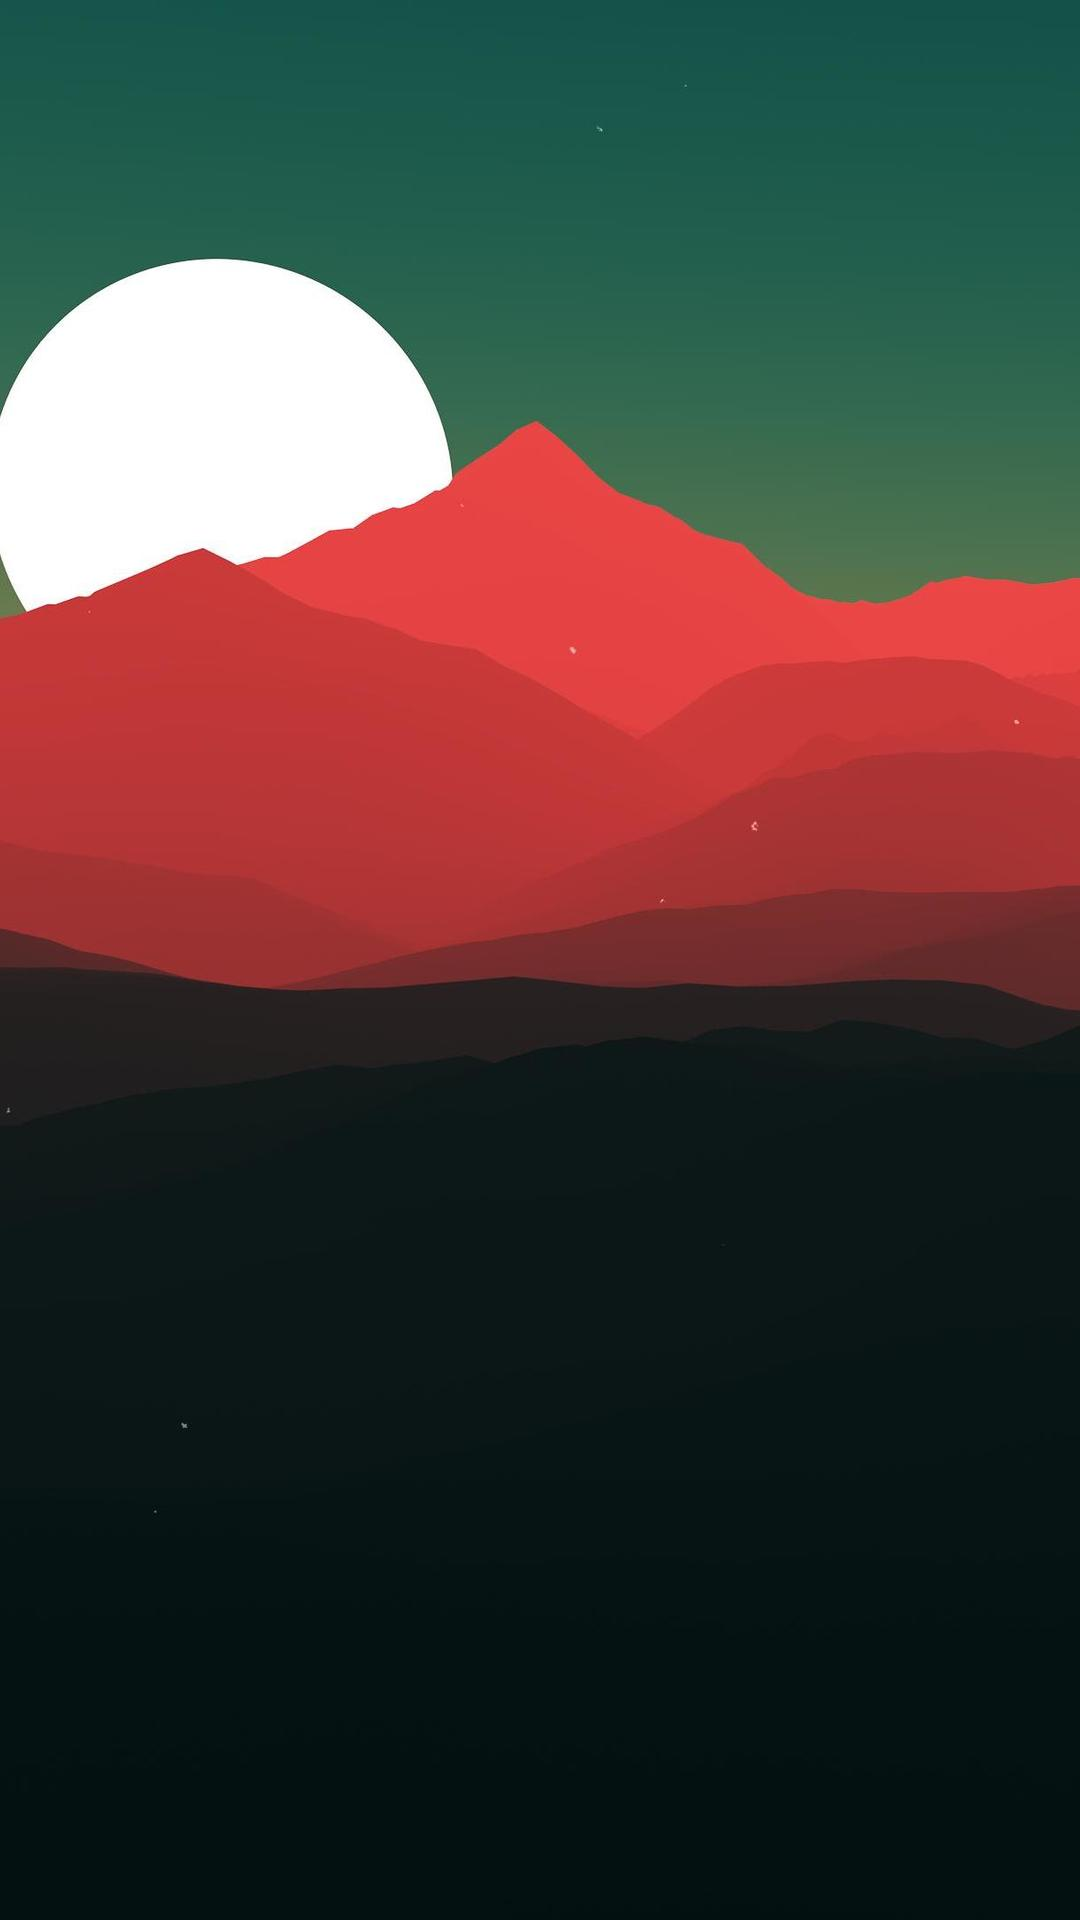 Minimalist landscape jt wallpaper 1080x1920 for 1080 by 1920 wallpaper